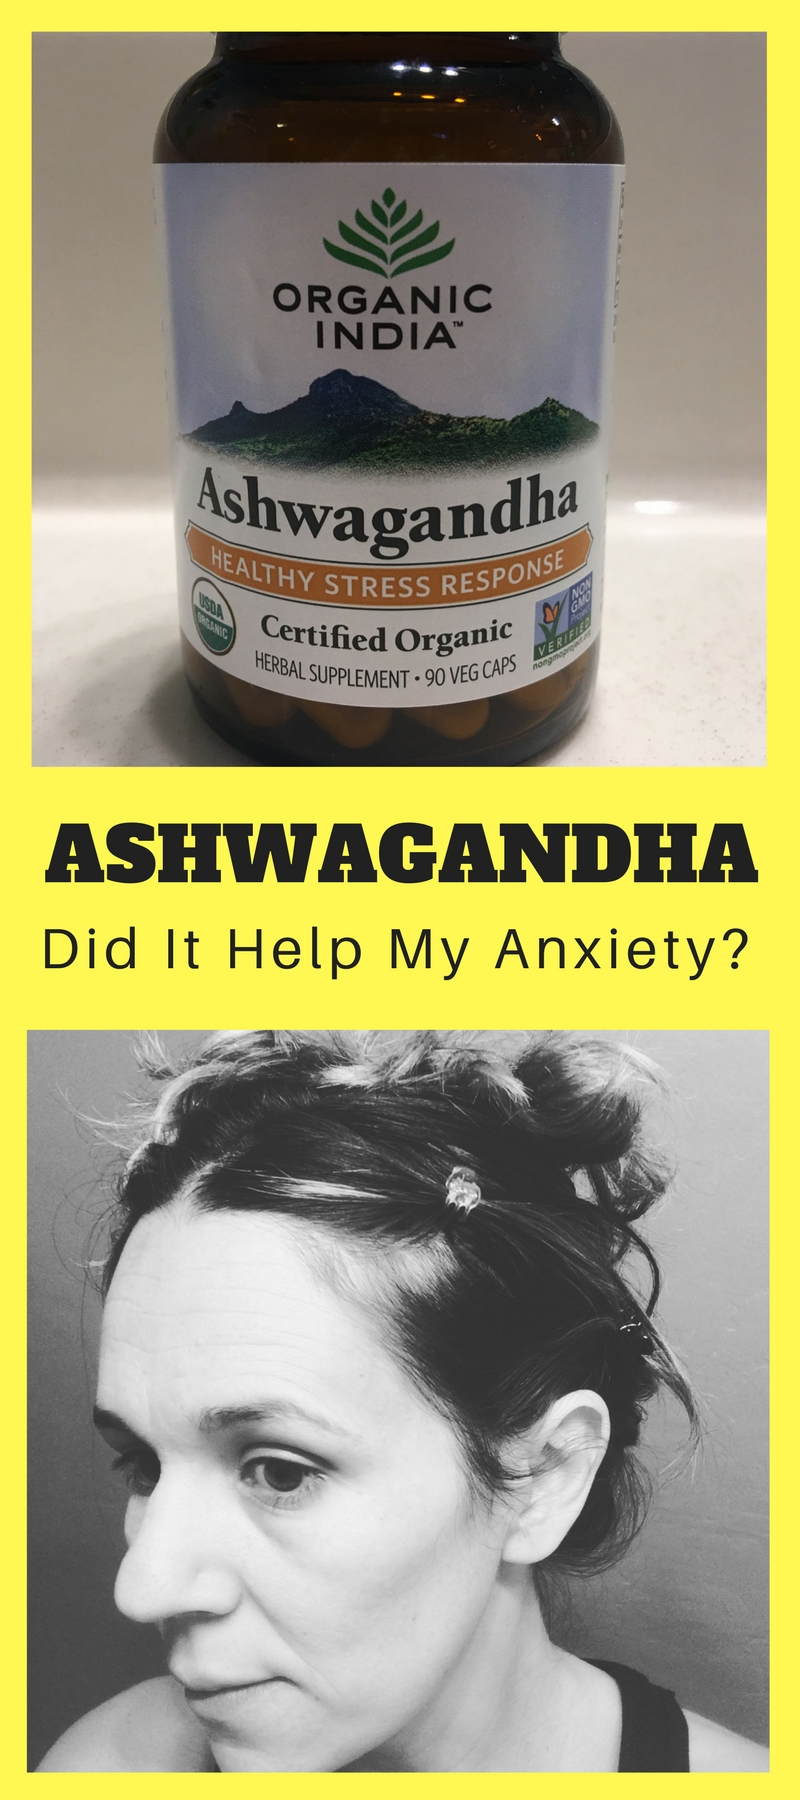 Is Ashwagandha good for anxiety